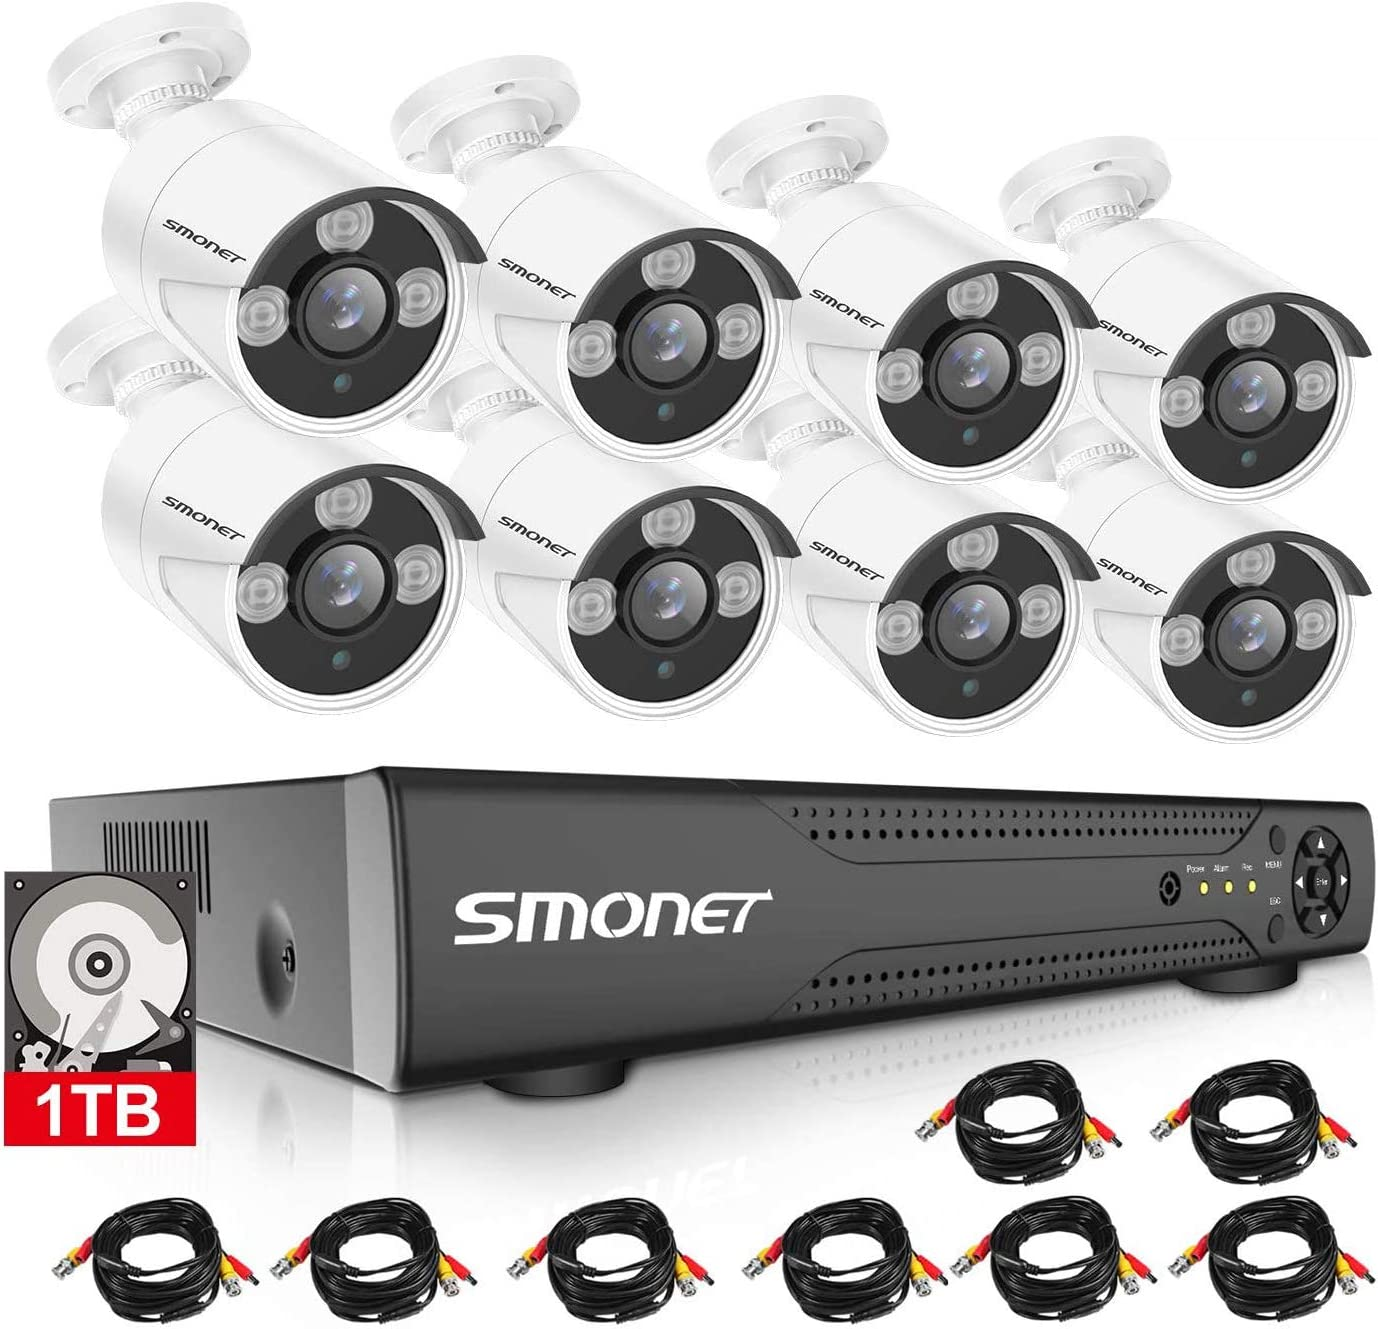 【16CH Expandable】 SMONET Surveillance Camera Systems,5-in-1 5MP Security Camera System(1TB Hard Drive),8pcs 1080P Indoor Outdoor Home Security Cameras,DVR Kits for Easy Remote Monitoring,Night Vision